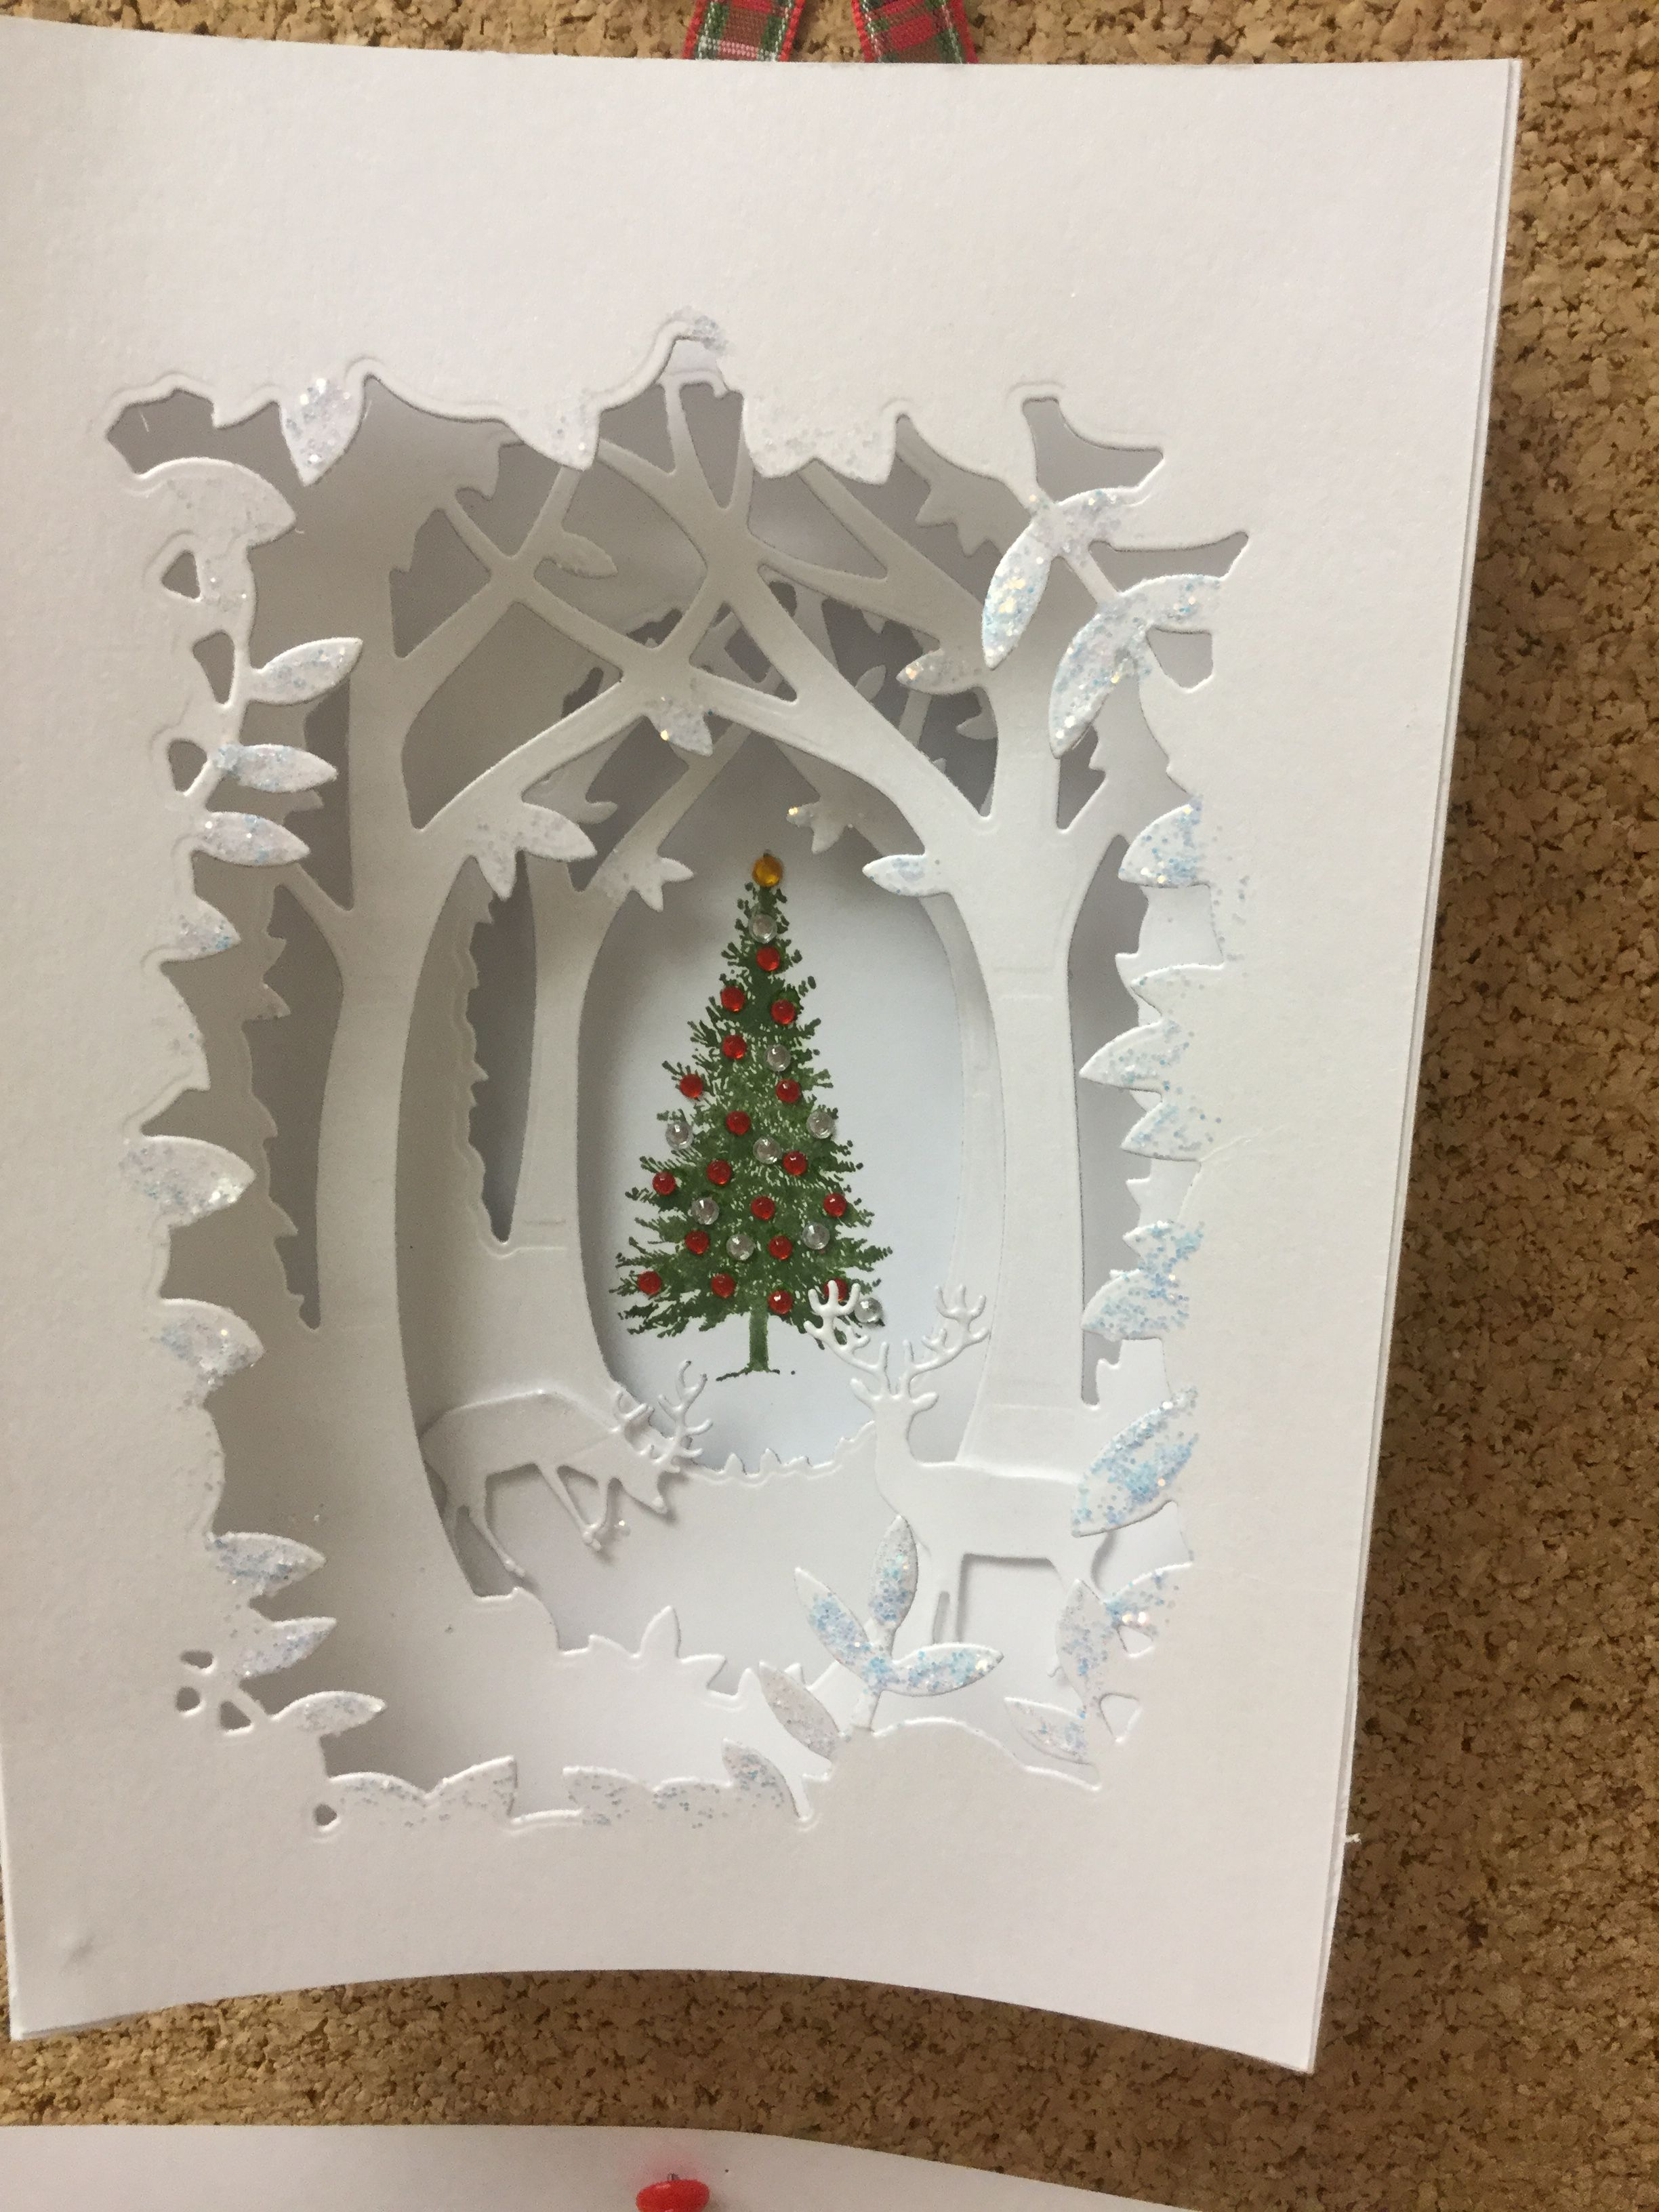 Pin By Yudhinia Venkanteswari On Build A Scene Christmas Card Crafts Christmas Card Inspiration Pop Up Christmas Cards